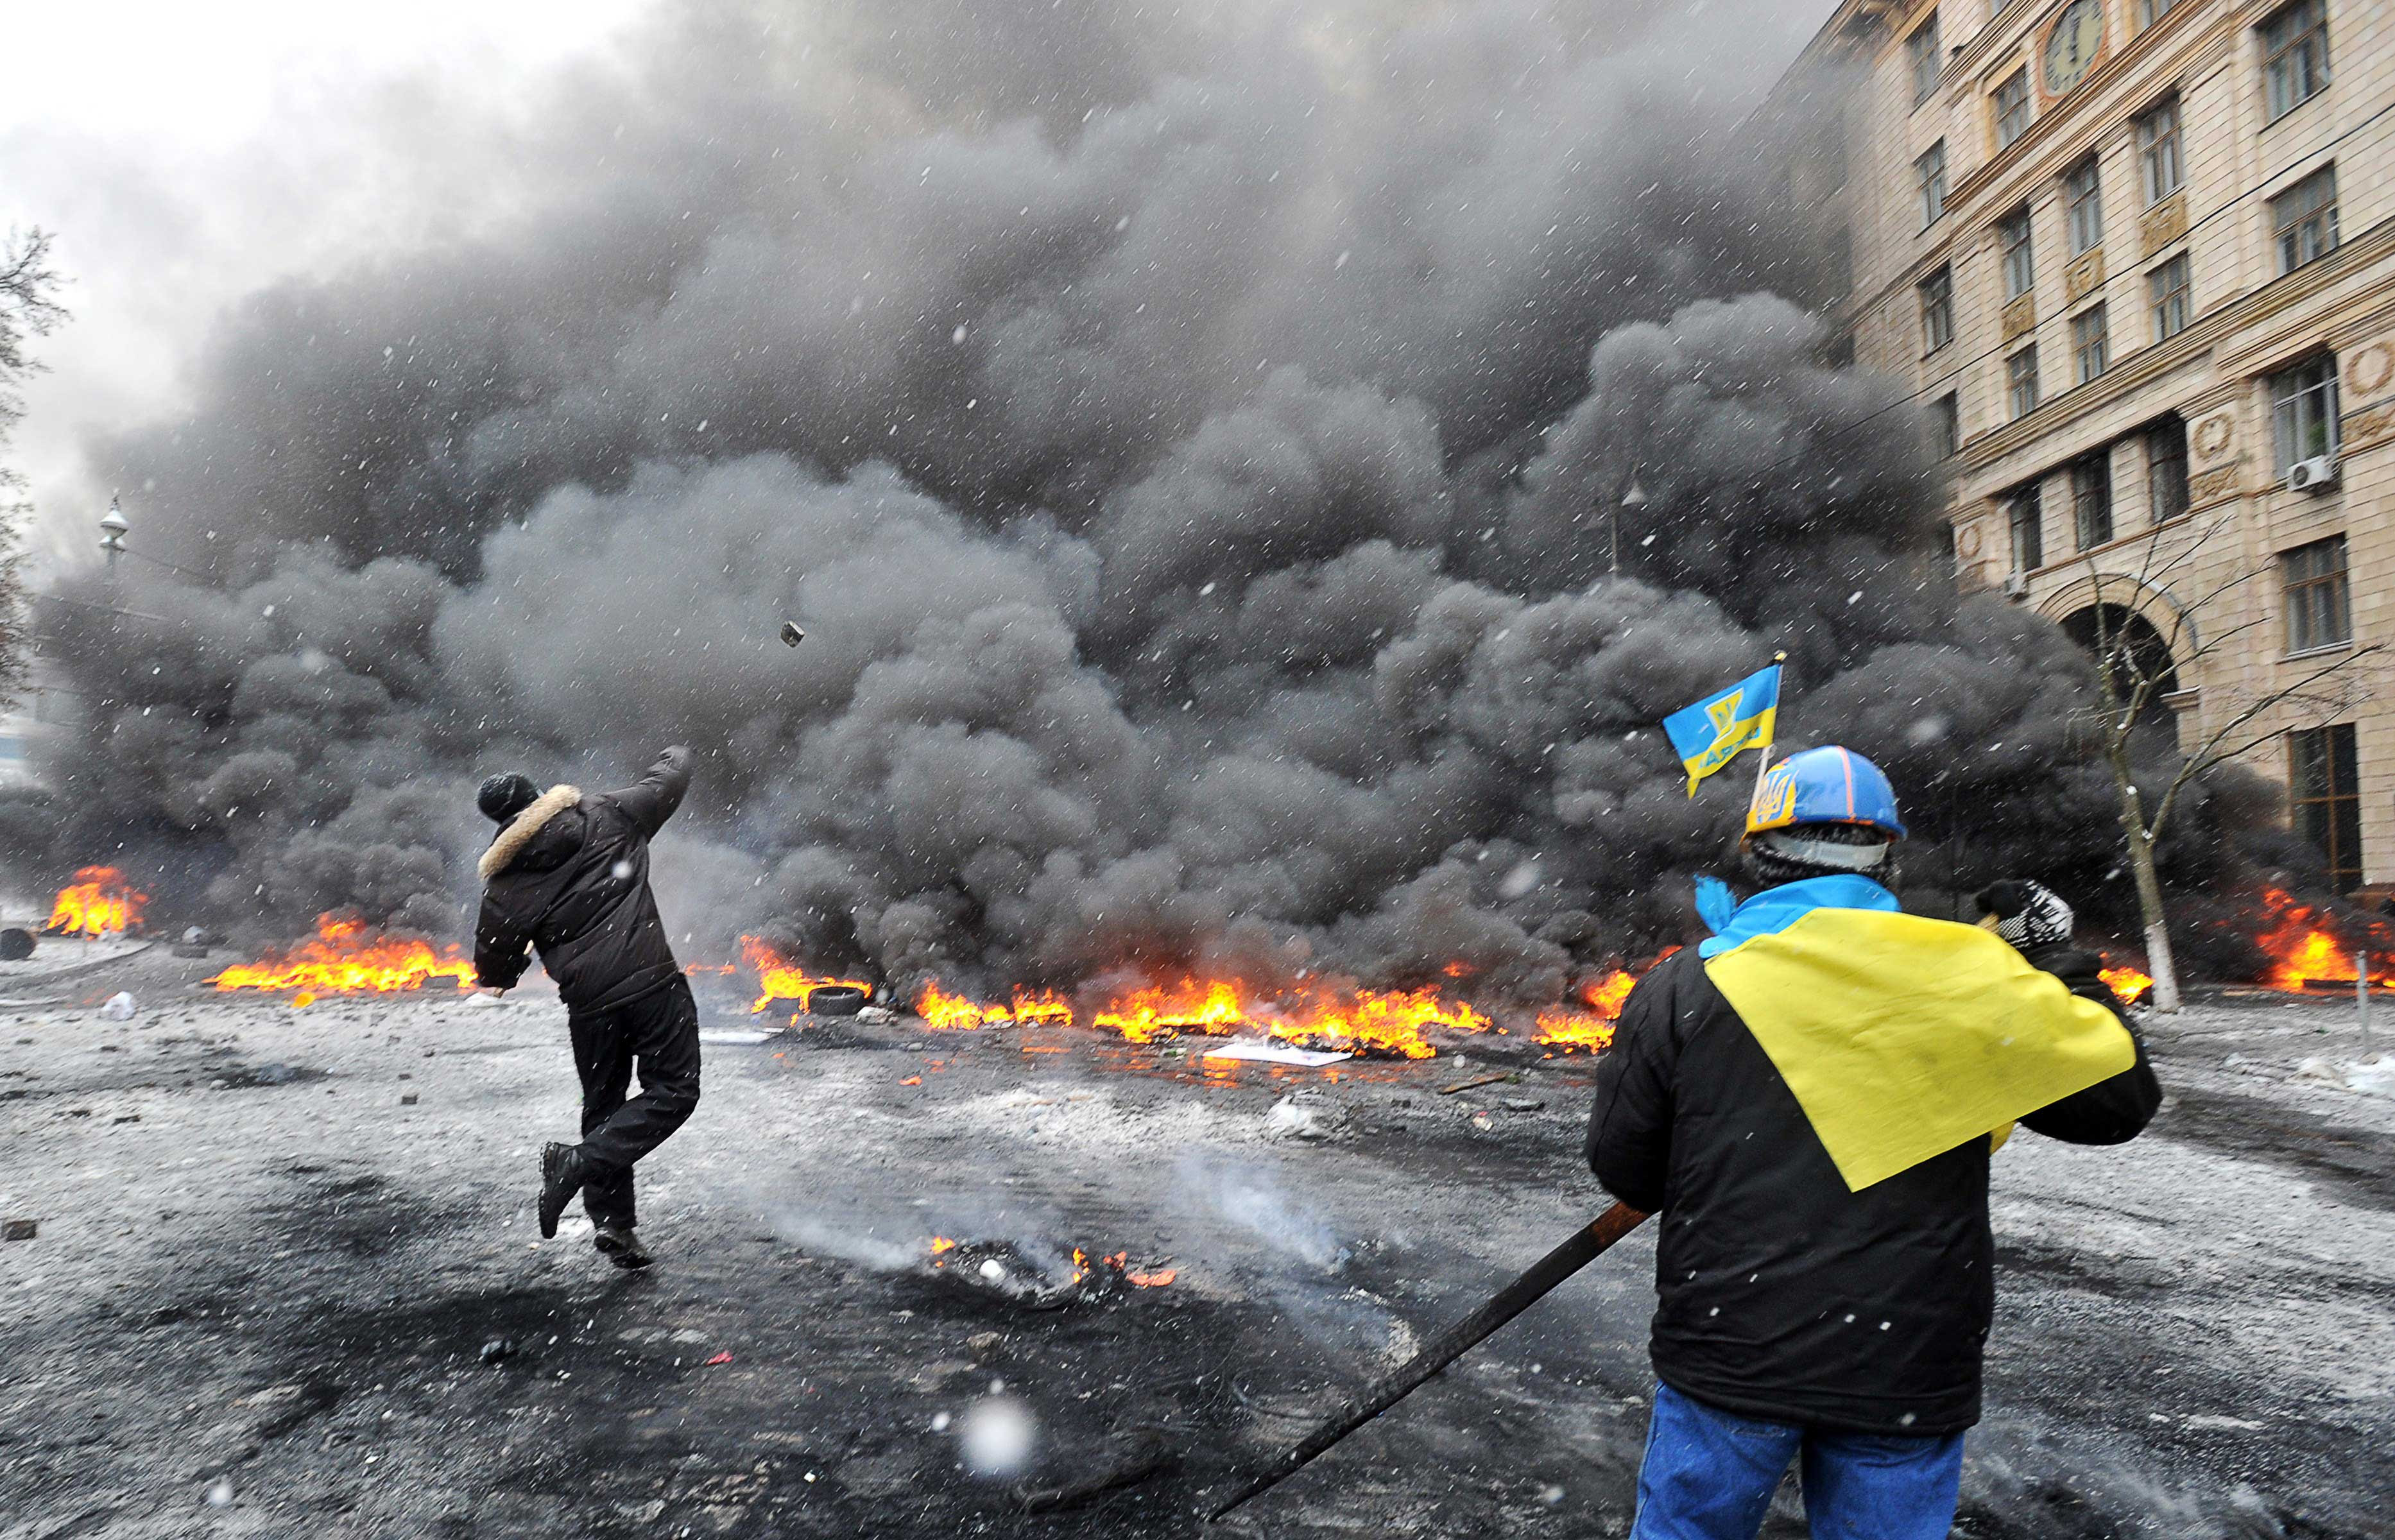 http://pixel.nymag.com/content/dam/daily/intelligencer/2014/01/22/ukraine-protests/22-ukraine-protests-05.jpg